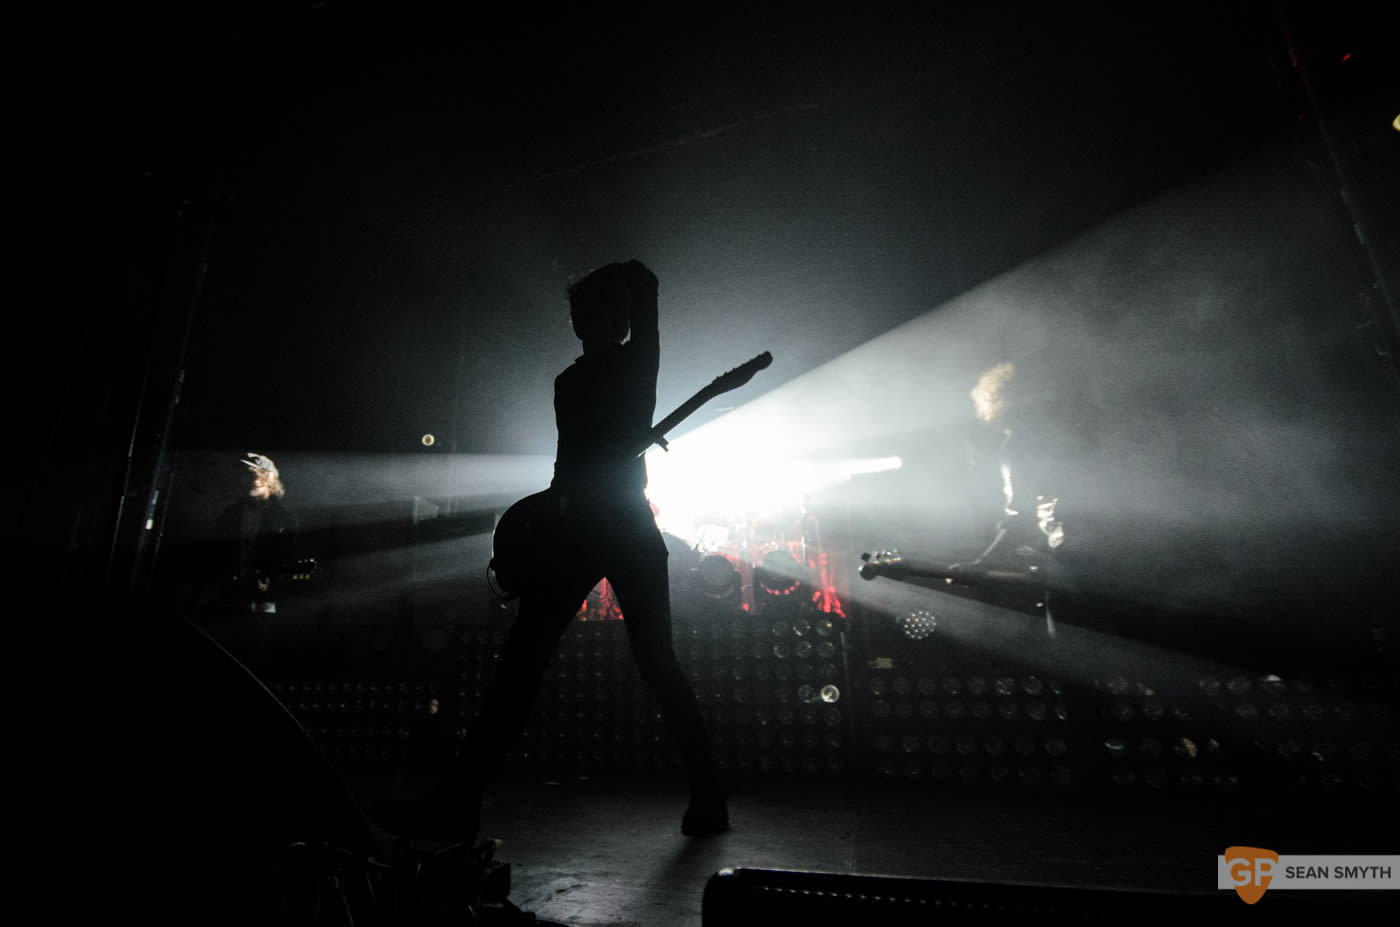 catfish-and-the-bottlemen-at-the-olympia-theatre-by-sean-smyth-20-11-16-5-of-27